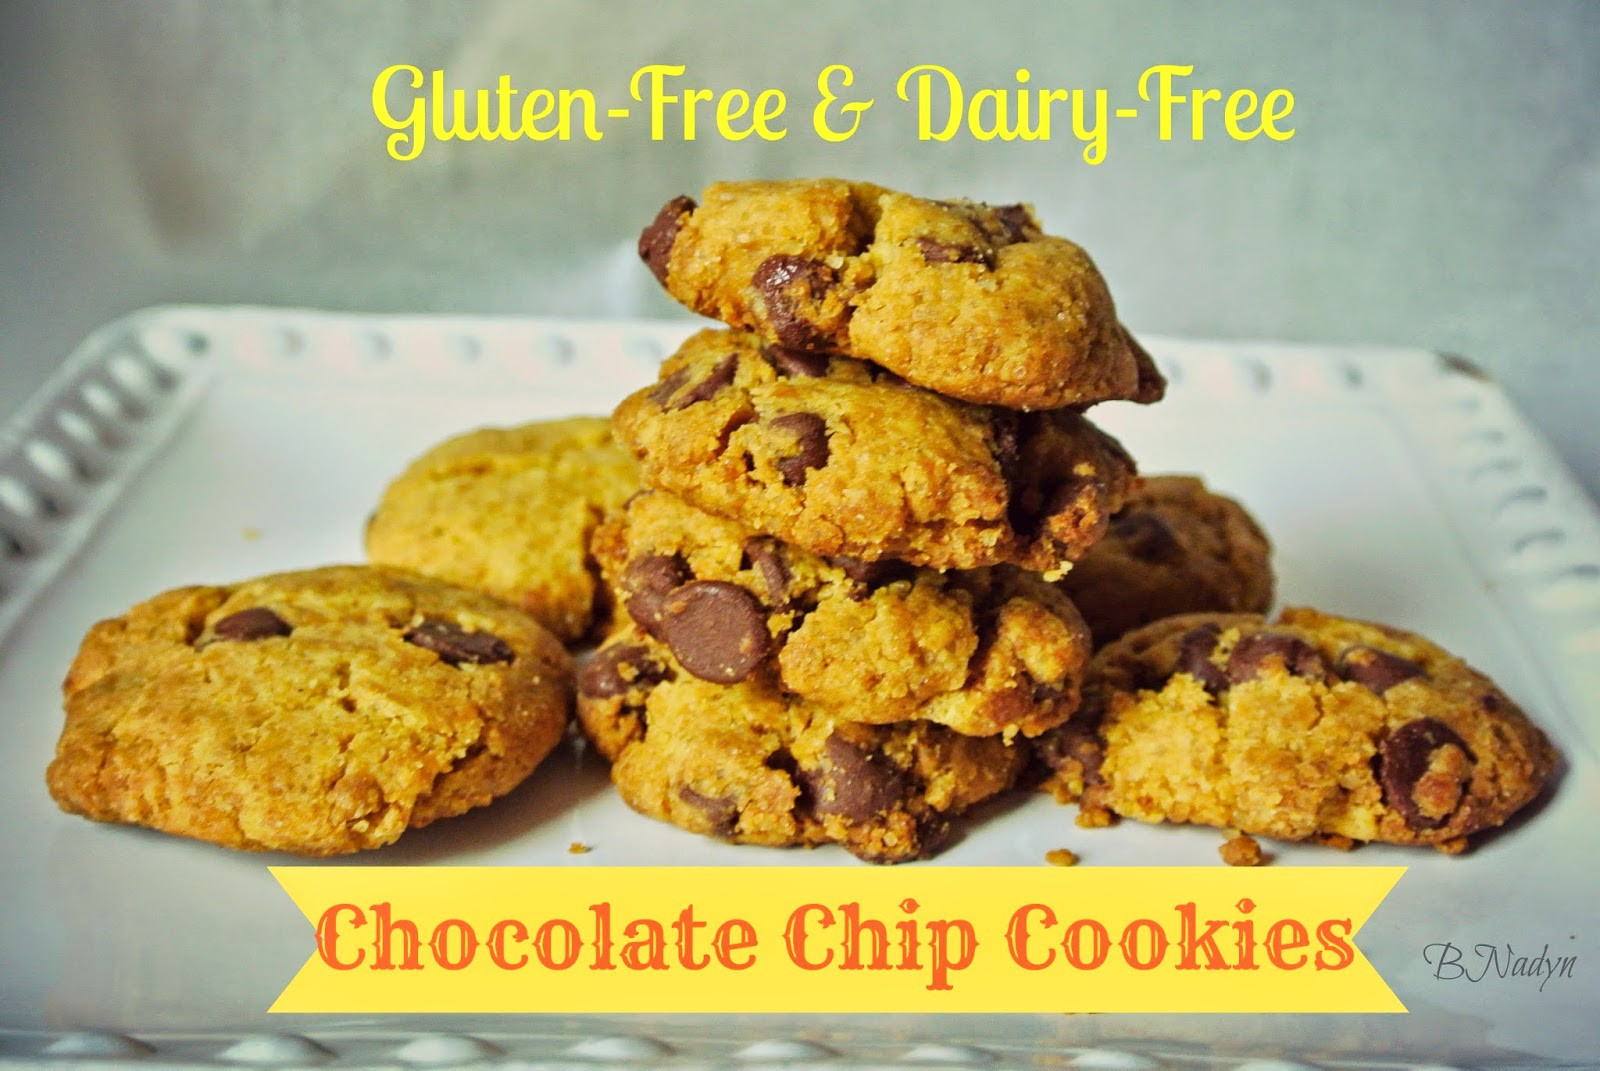 Dairy Free Chocolate Chip Cookies  B is 4 Brody s Gluten Free Dairy Free Chocolate Chip Cookies